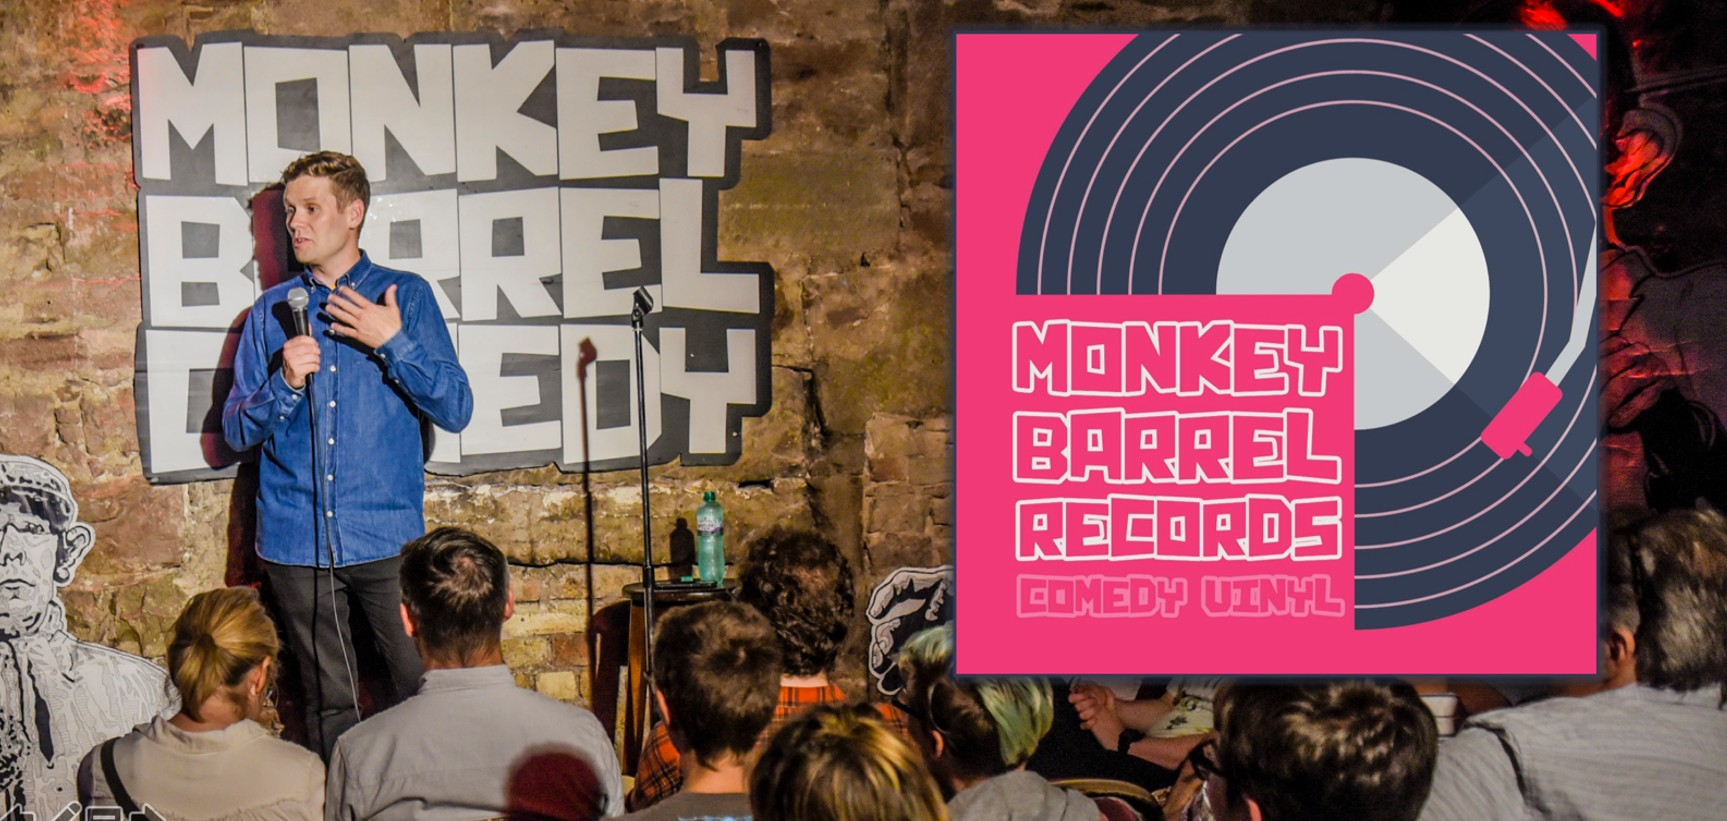 Monkey Barrel Records